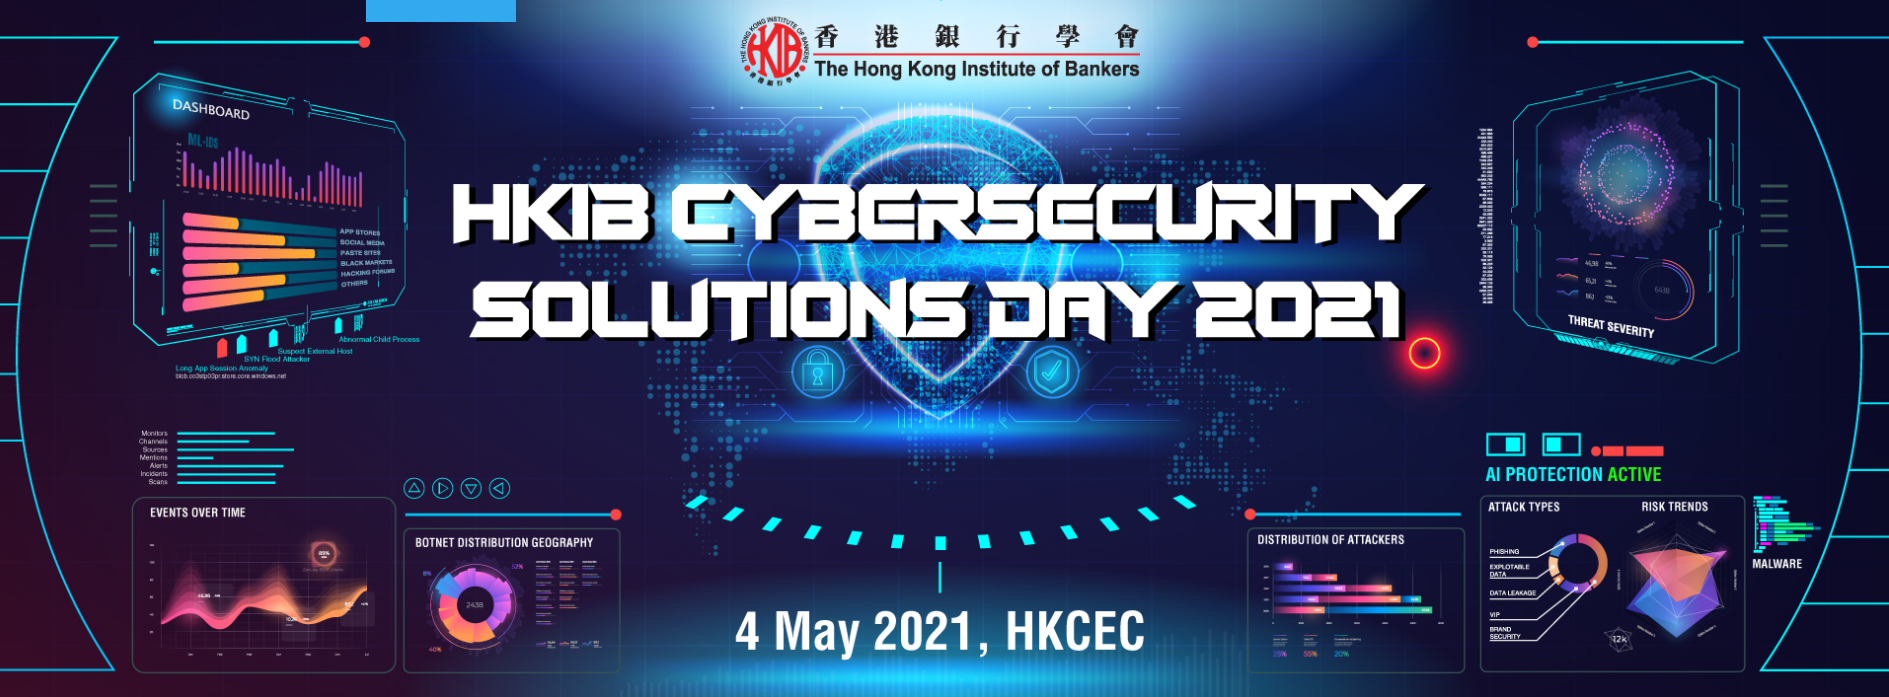 [HKIB] - Cybersecurity Solutions Day 2021